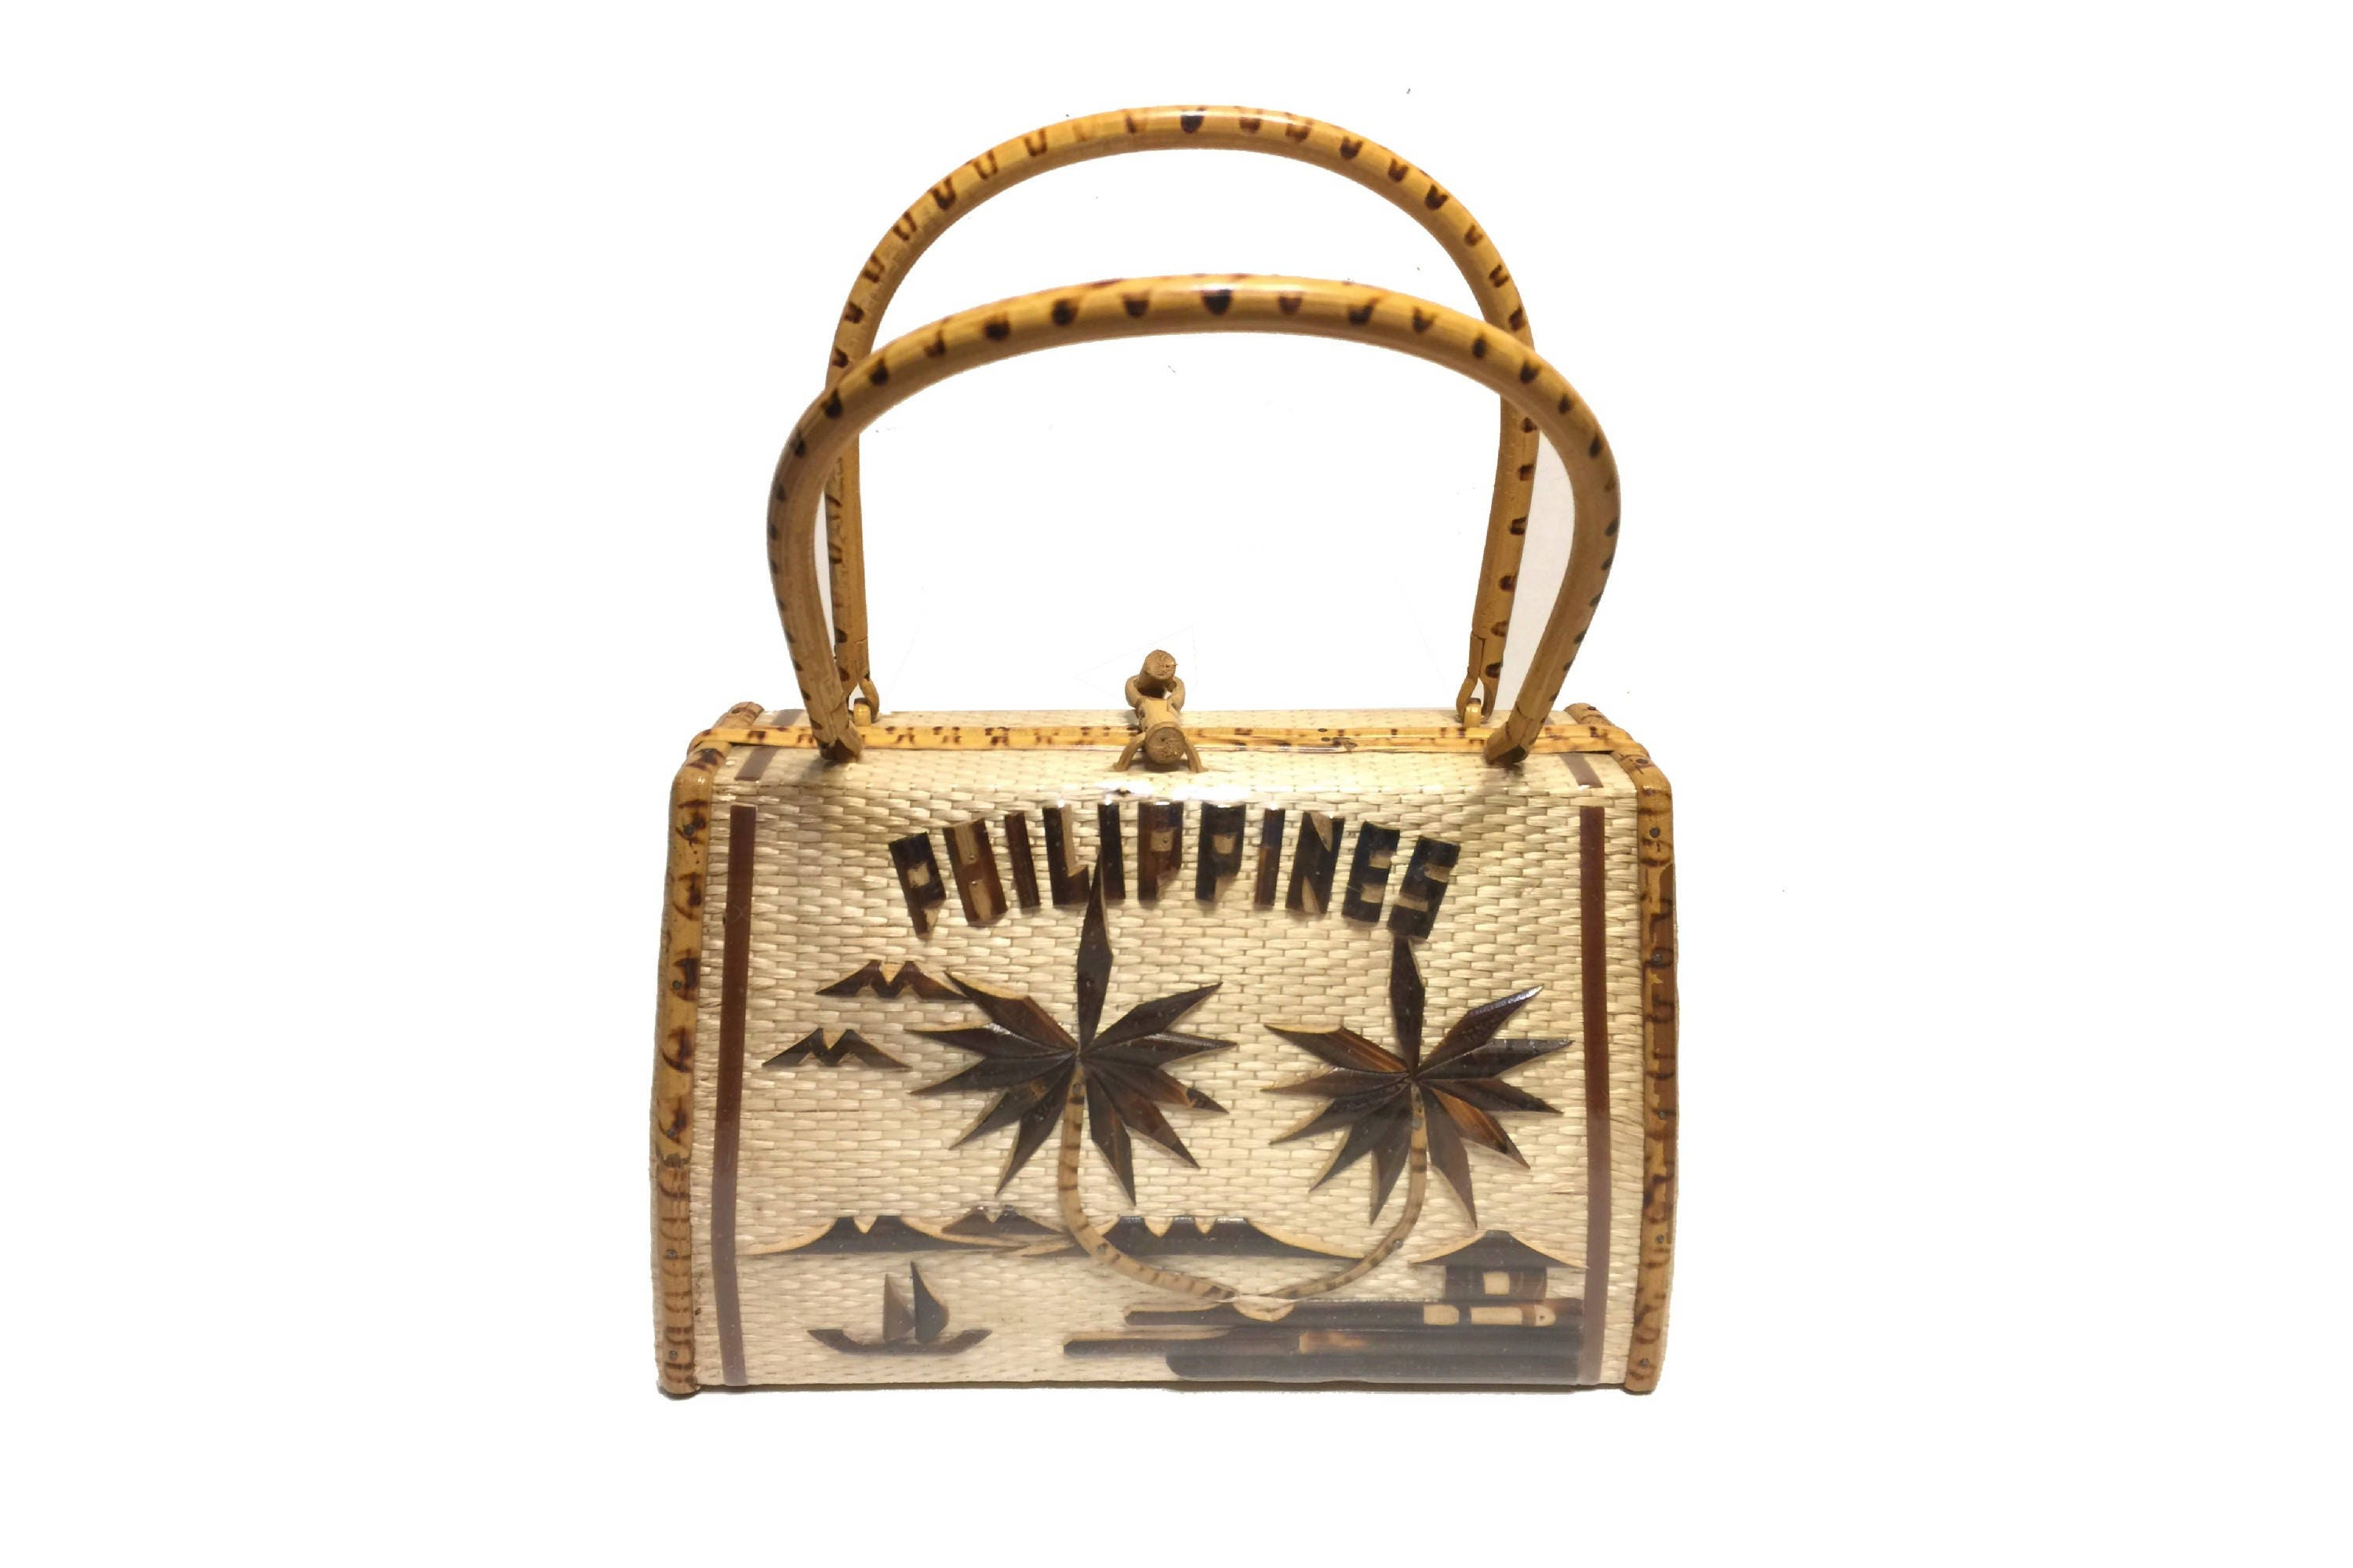 Vintage Purse Philippines Box Style With Wooden Handles Amp Wood